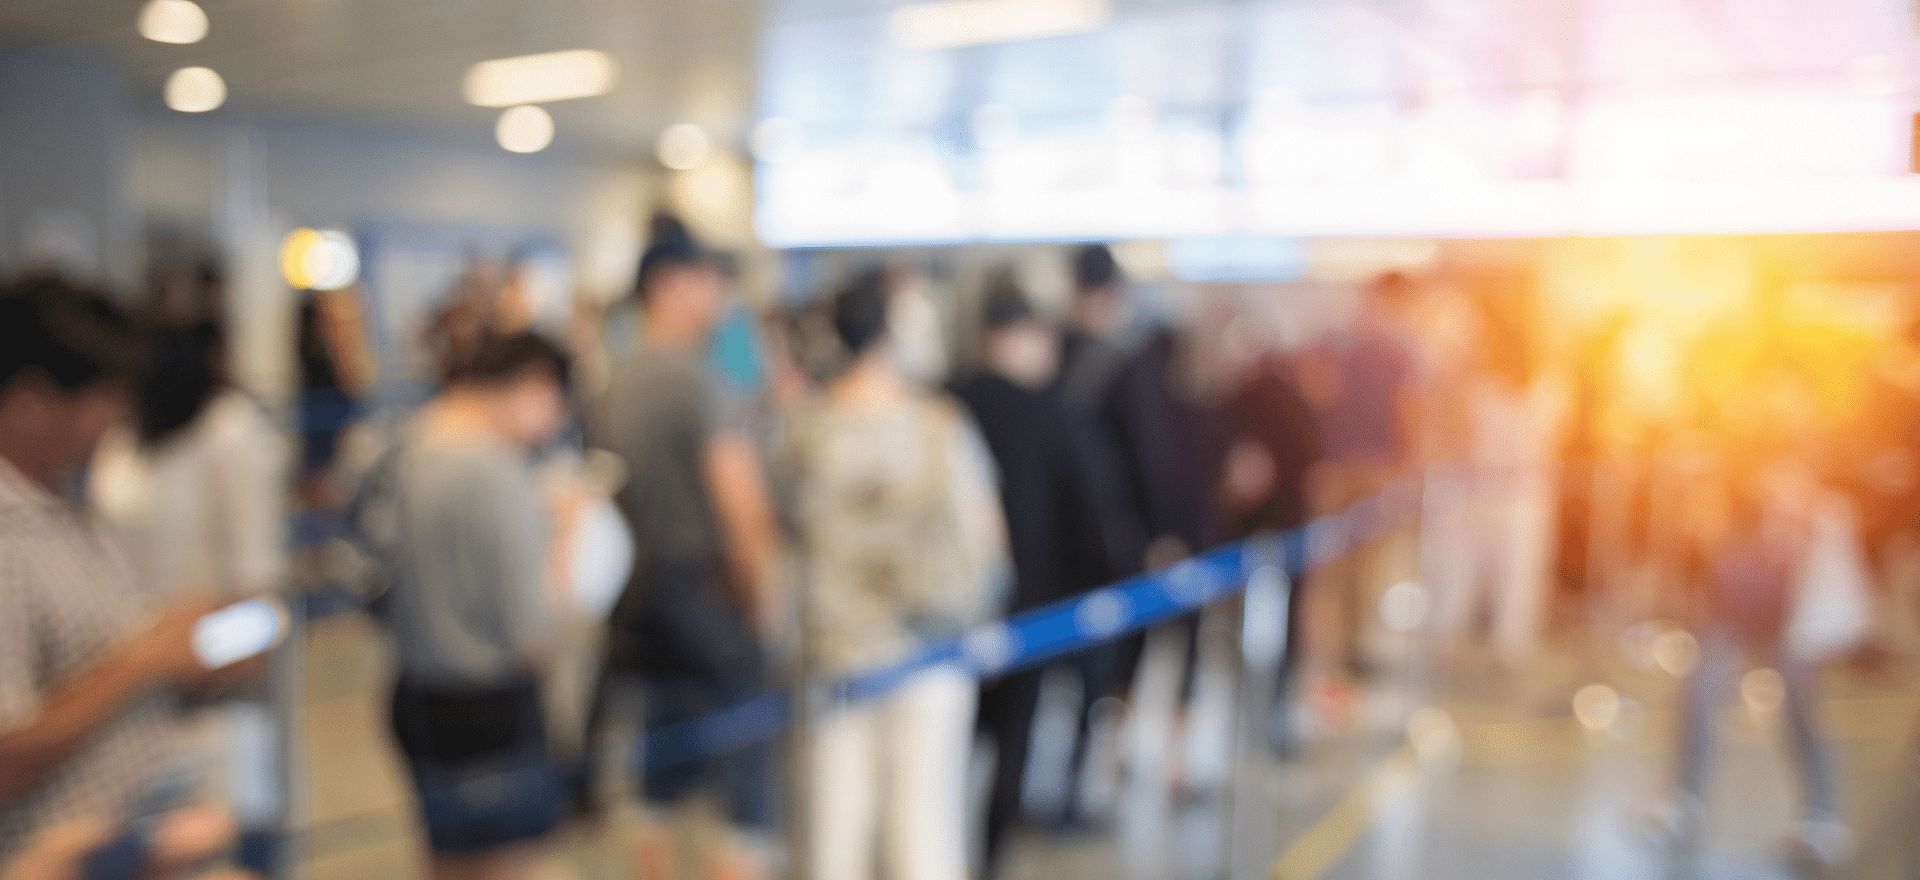 Header image of The Lookout All News Online Events and Virtual Events on the exhibition industry and attendees' empowerment/ Die Supermacht der Online-Veranstaltungen.